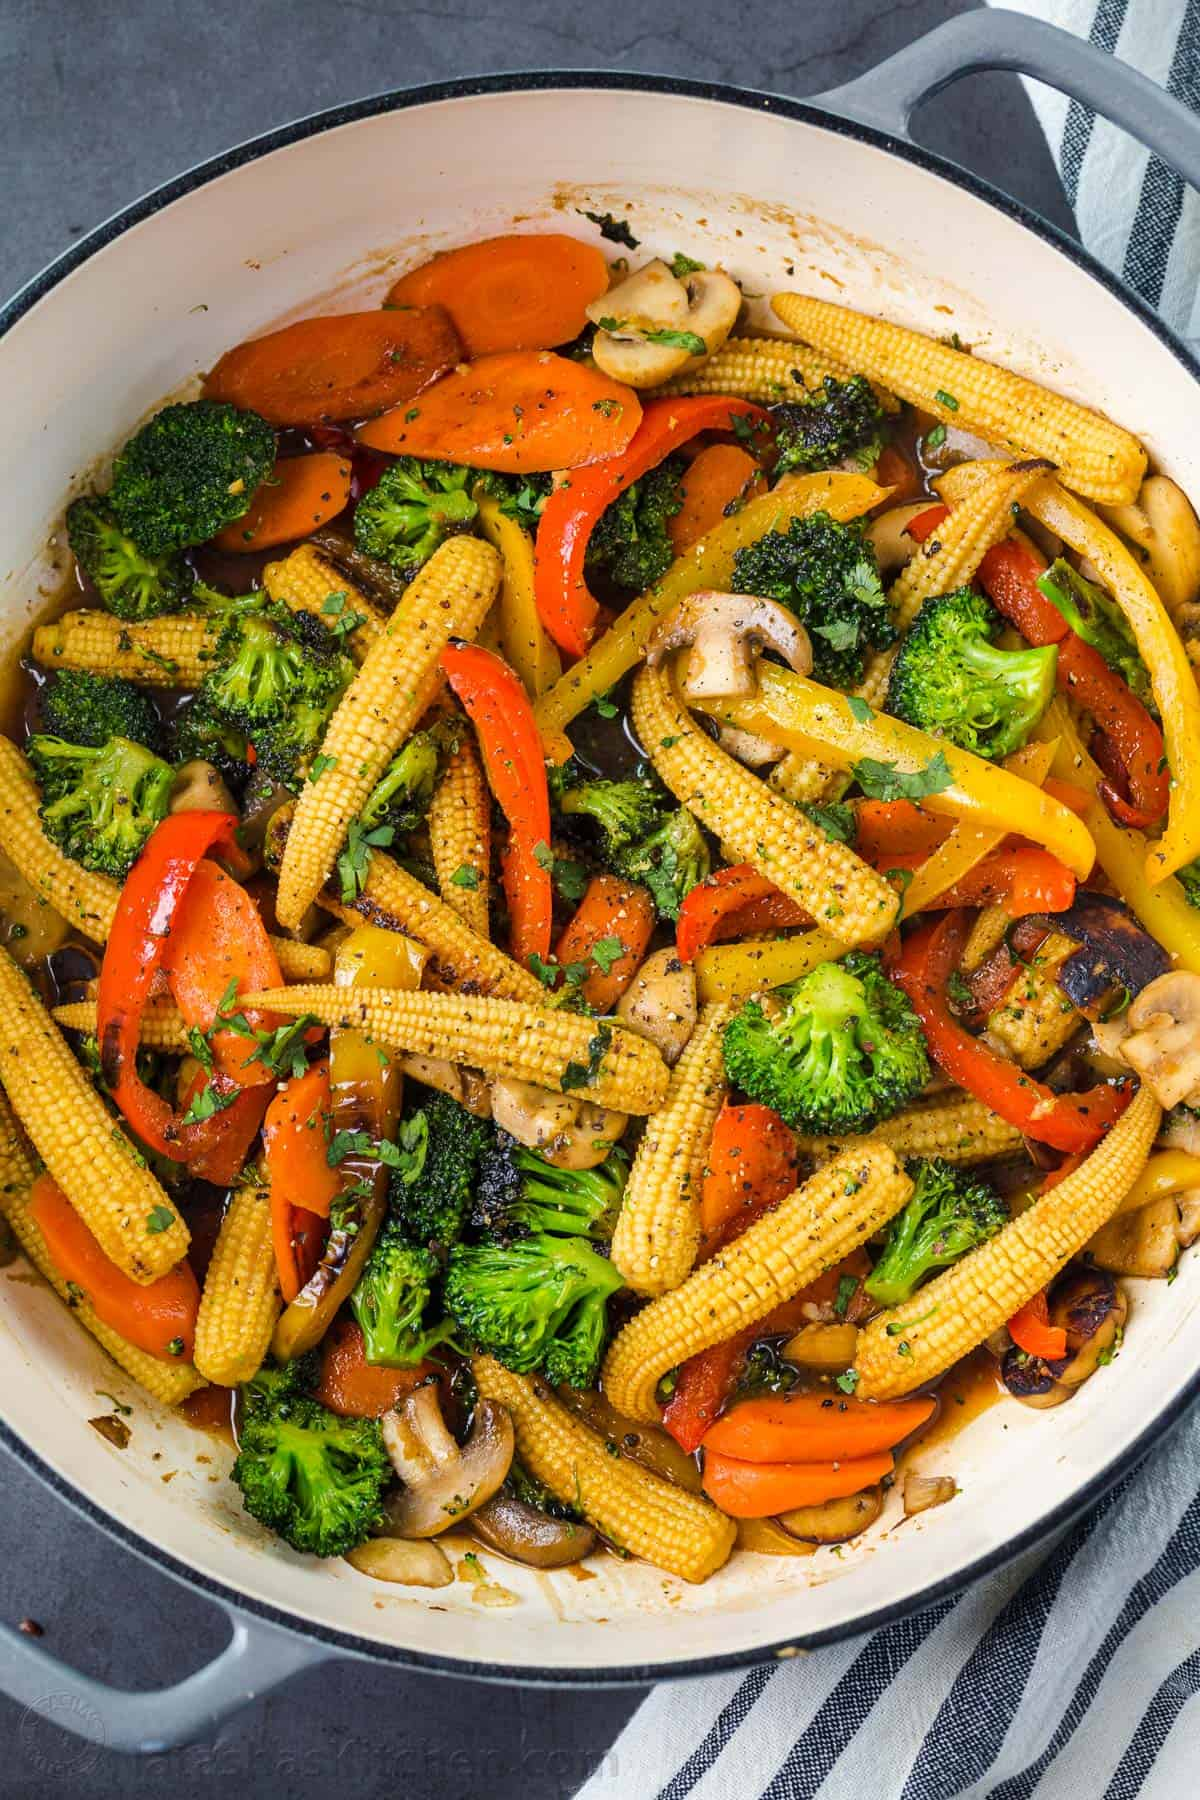 Easy Vegetable Stir Fry Recipe Natashaskitchen Com